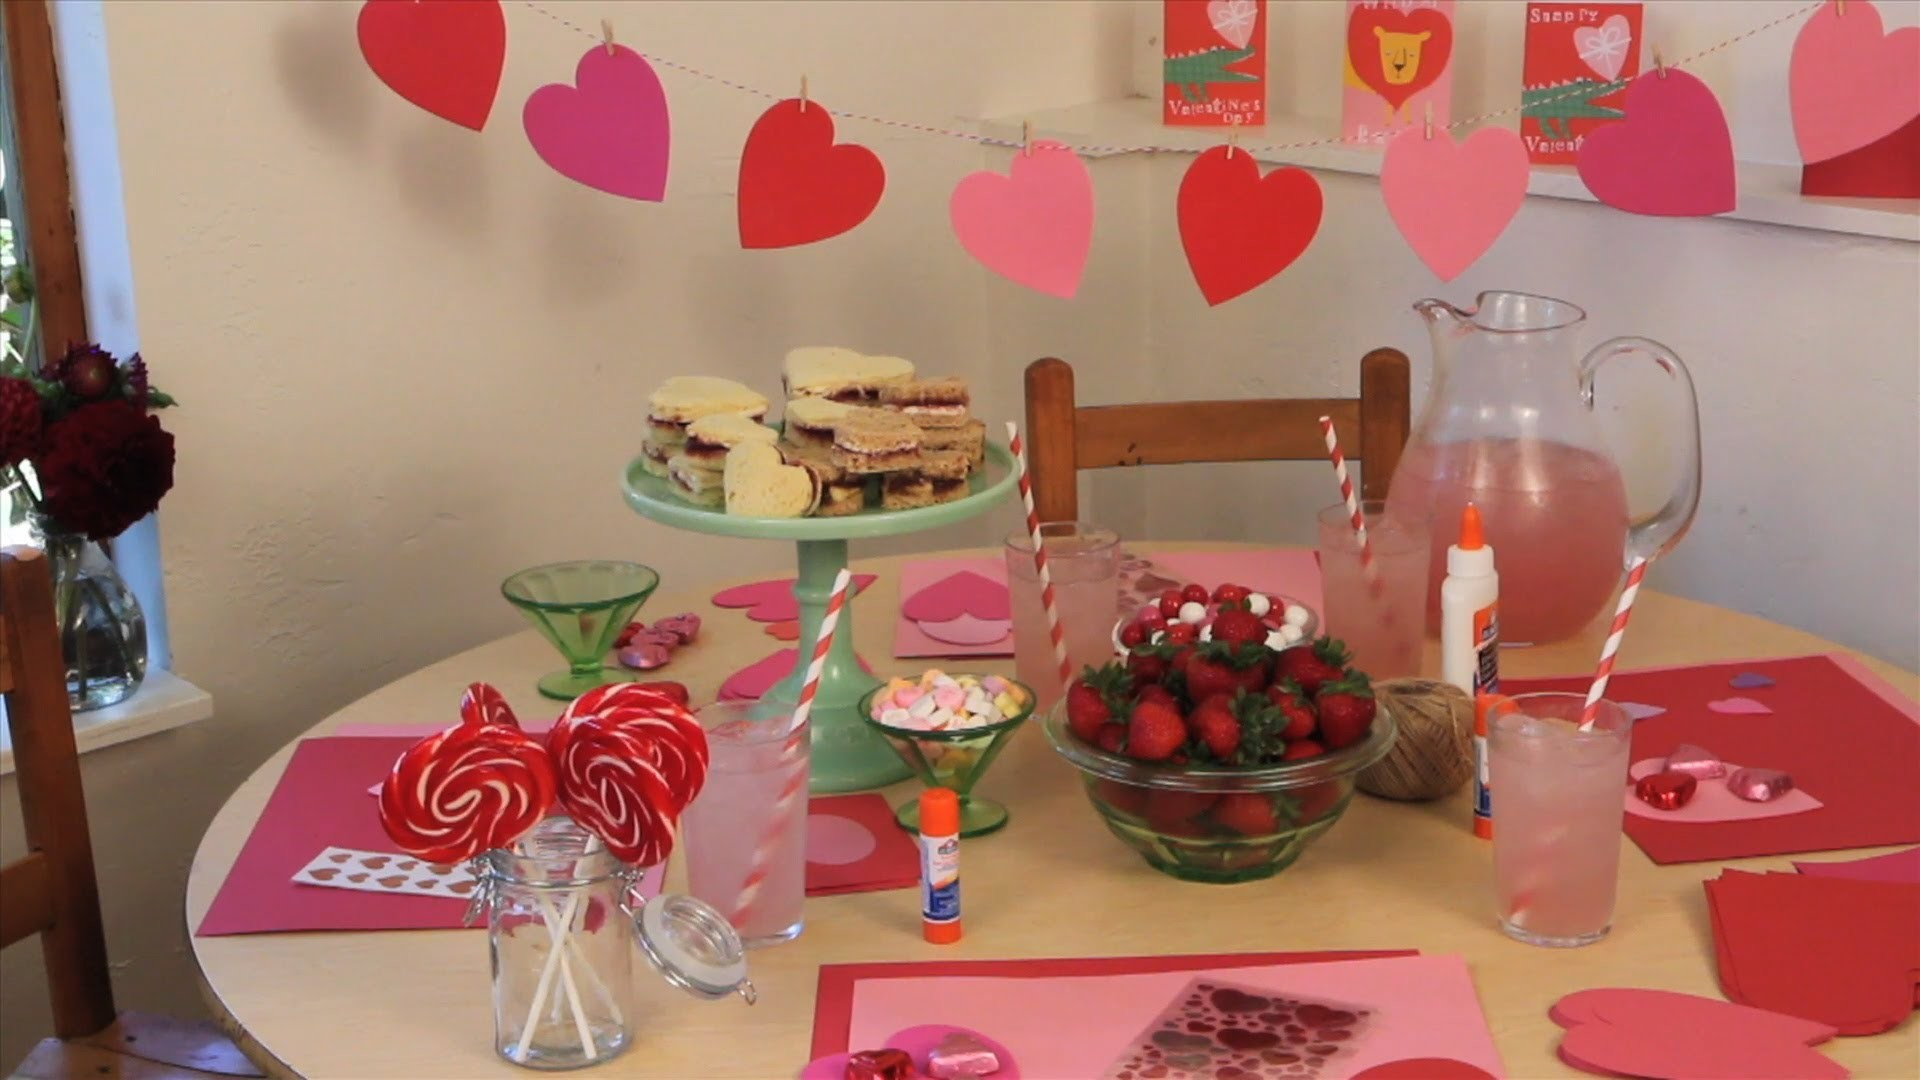 How to Host a Valentine's Day Party: Valentine's Day Sweet Treats